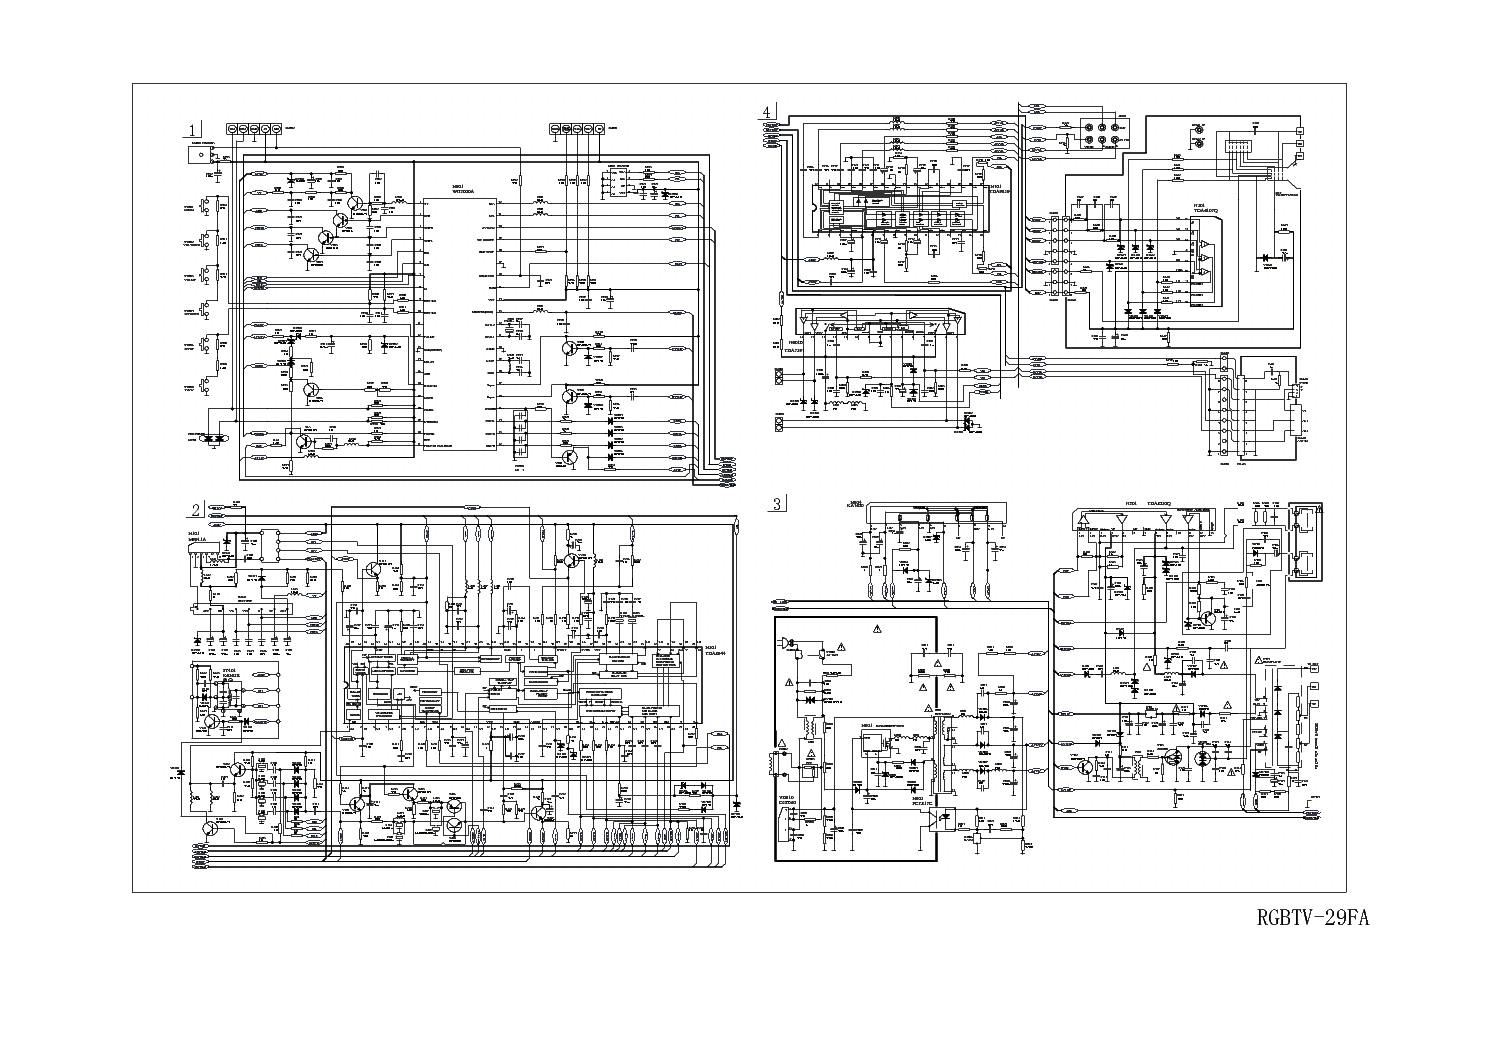 haier_tv 29fa_circuit_diagram.pdf_1?resize\\\\\\\\=840%2C594\\\\\\\\&ssl\\\\\\\\=1 dryer wiring diagram electric dryer connection diagram, dryer ge dryer wiring diagram at gsmx.co